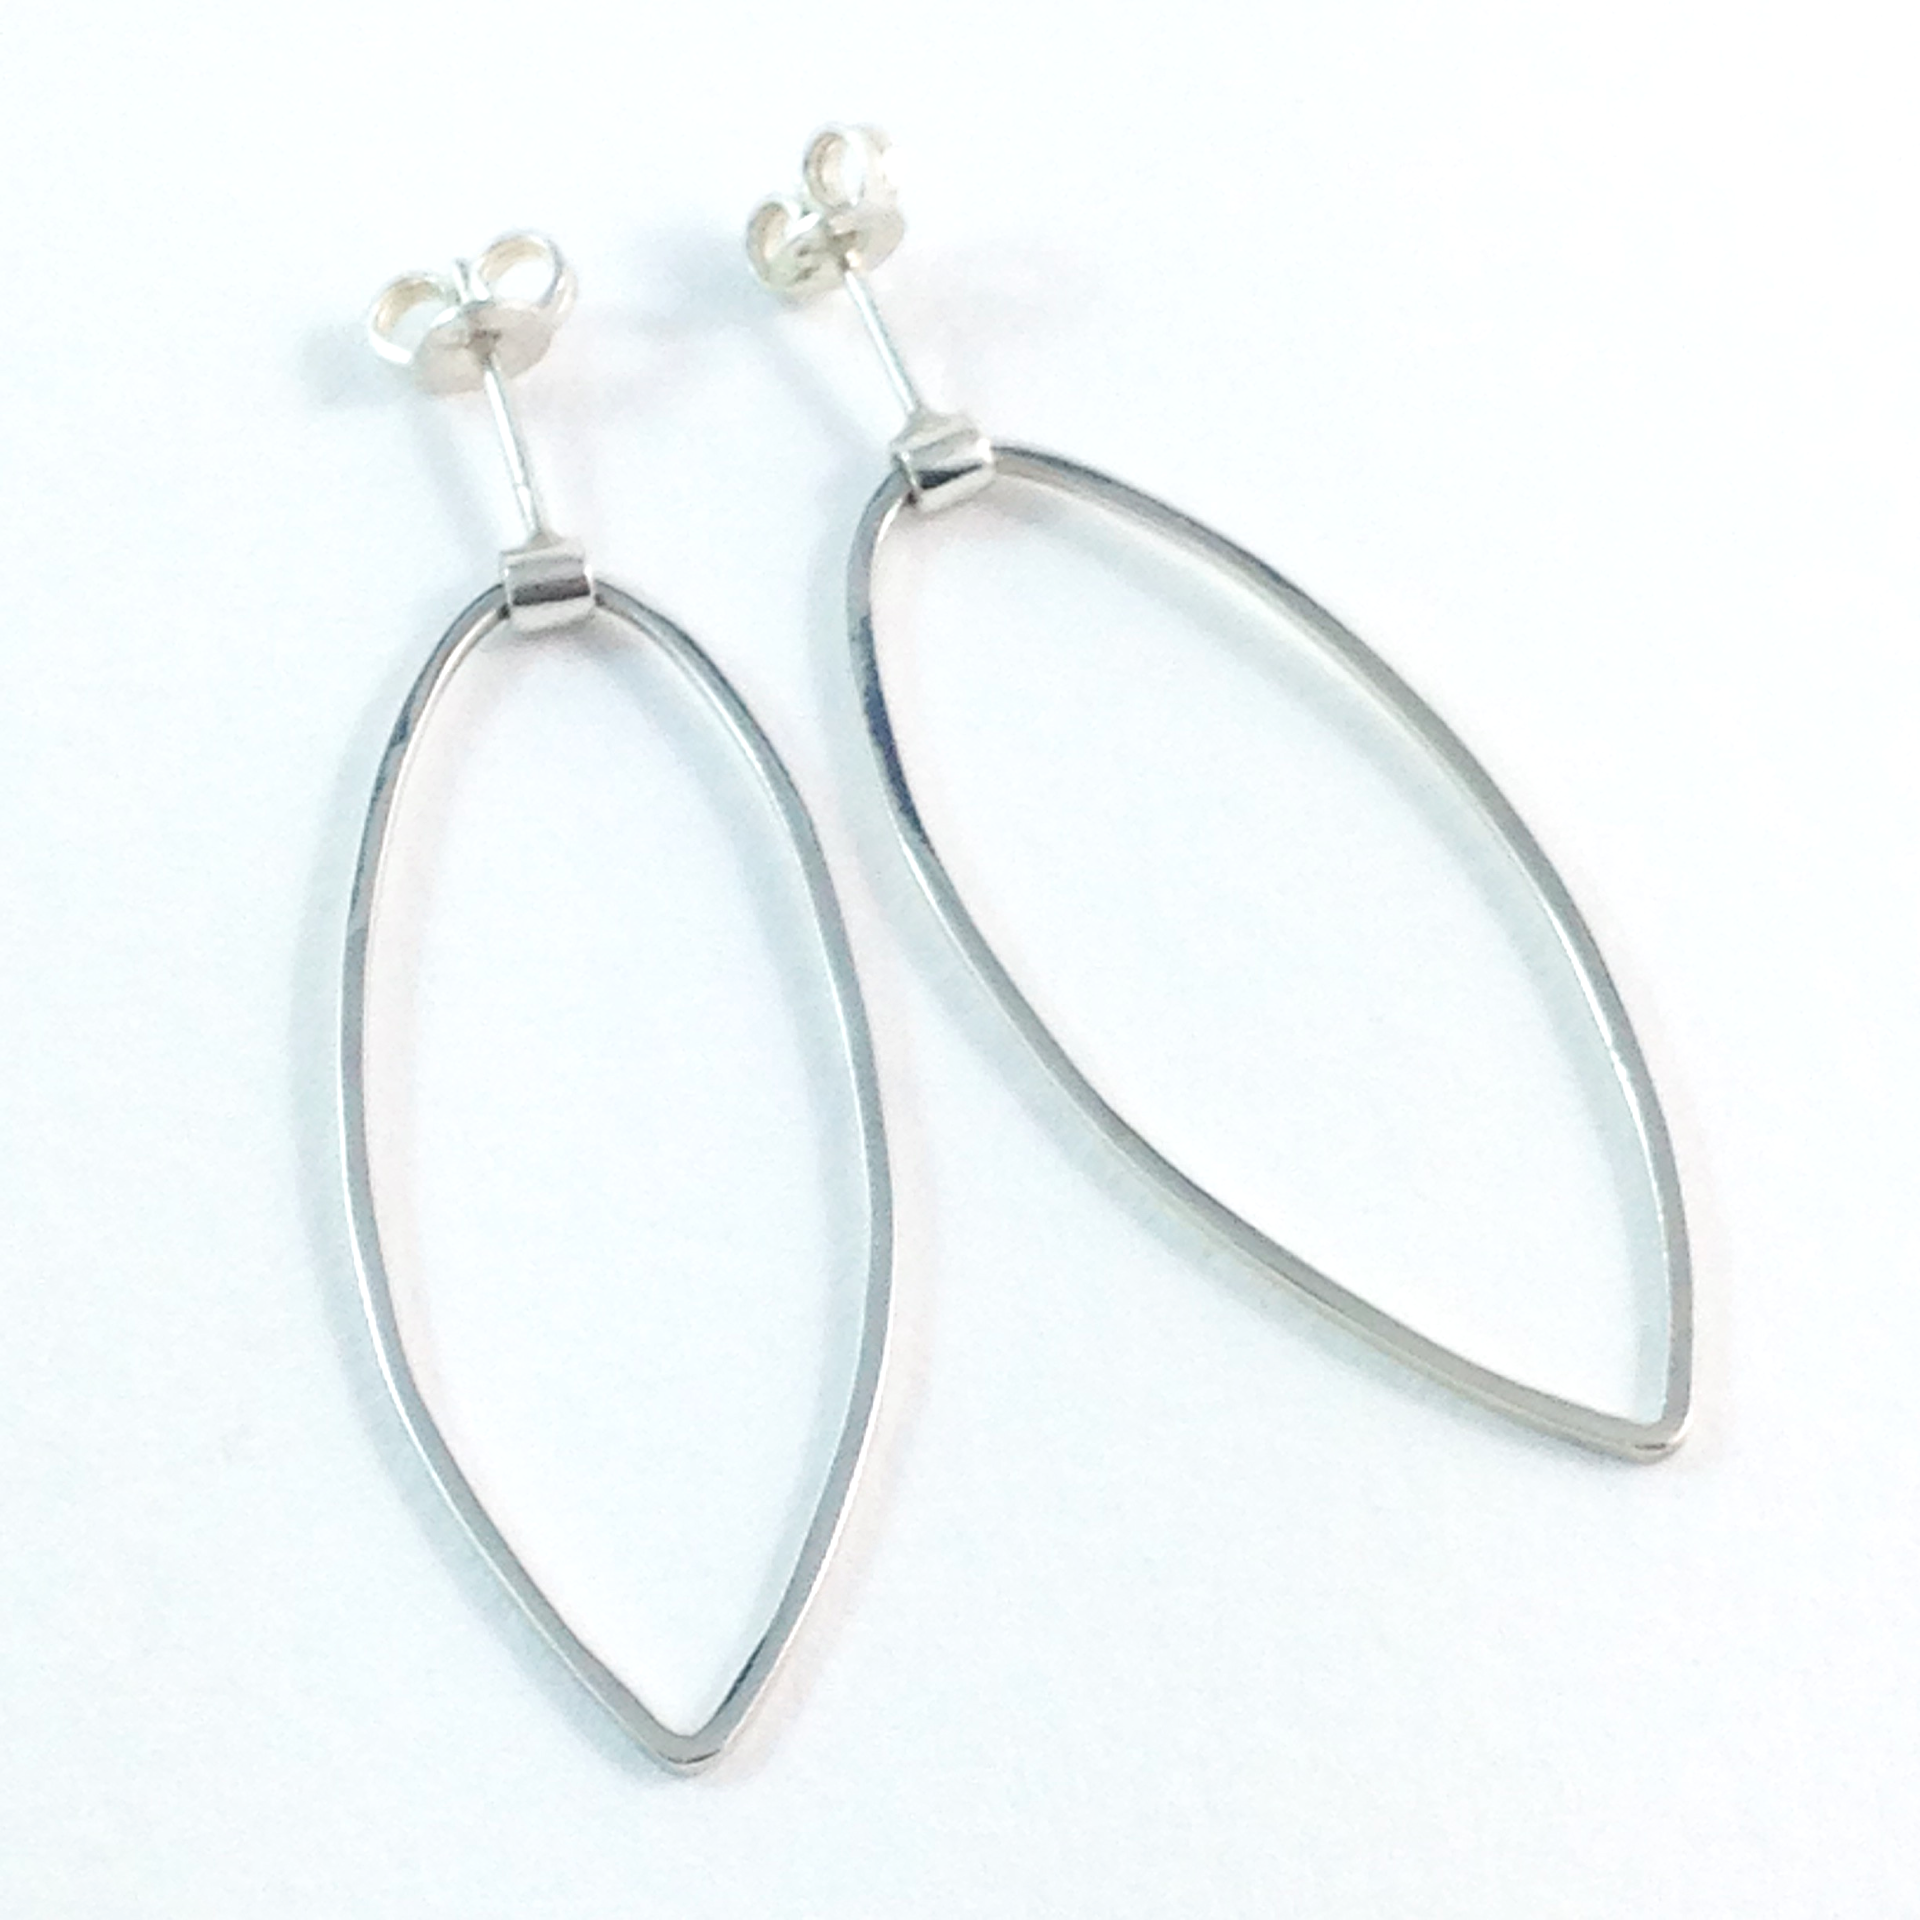 Elipse swing/dangle earrings